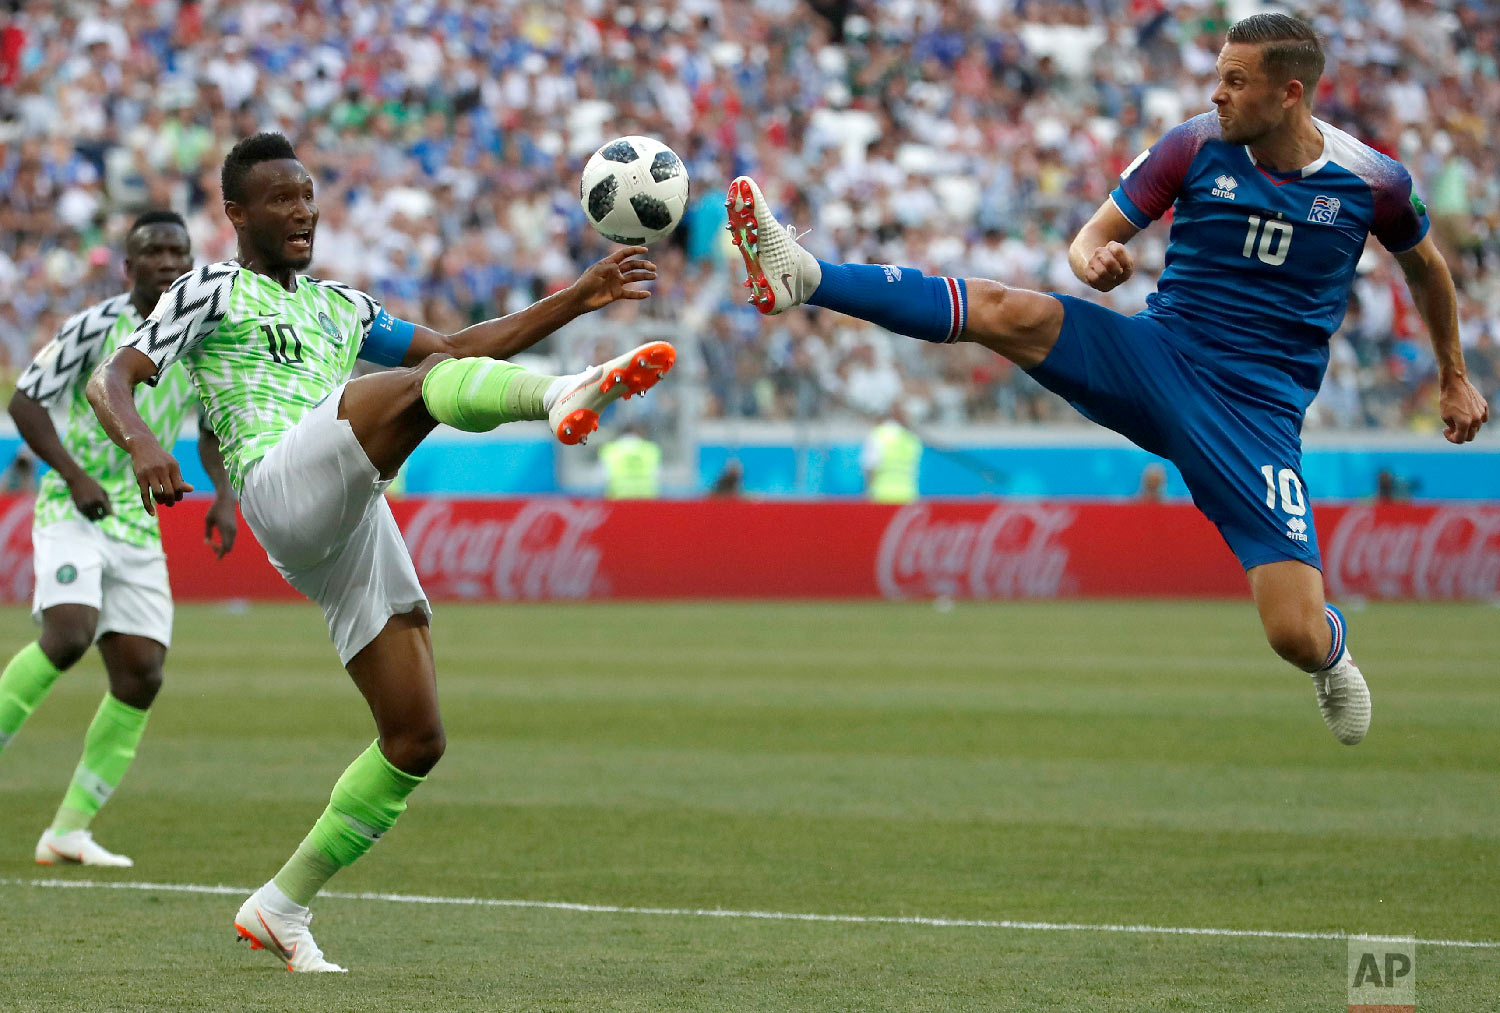 Nigeria's John Obi Mikel, left, and Iceland's Gylfi Sigurdsson compete for the ball during the group D match between Nigeria and Iceland at the 2018 soccer World Cup in the Volgograd Arena in Volgograd, Russia, Friday, June 22, 2018. (AP Photo/Darko Vojinovic)